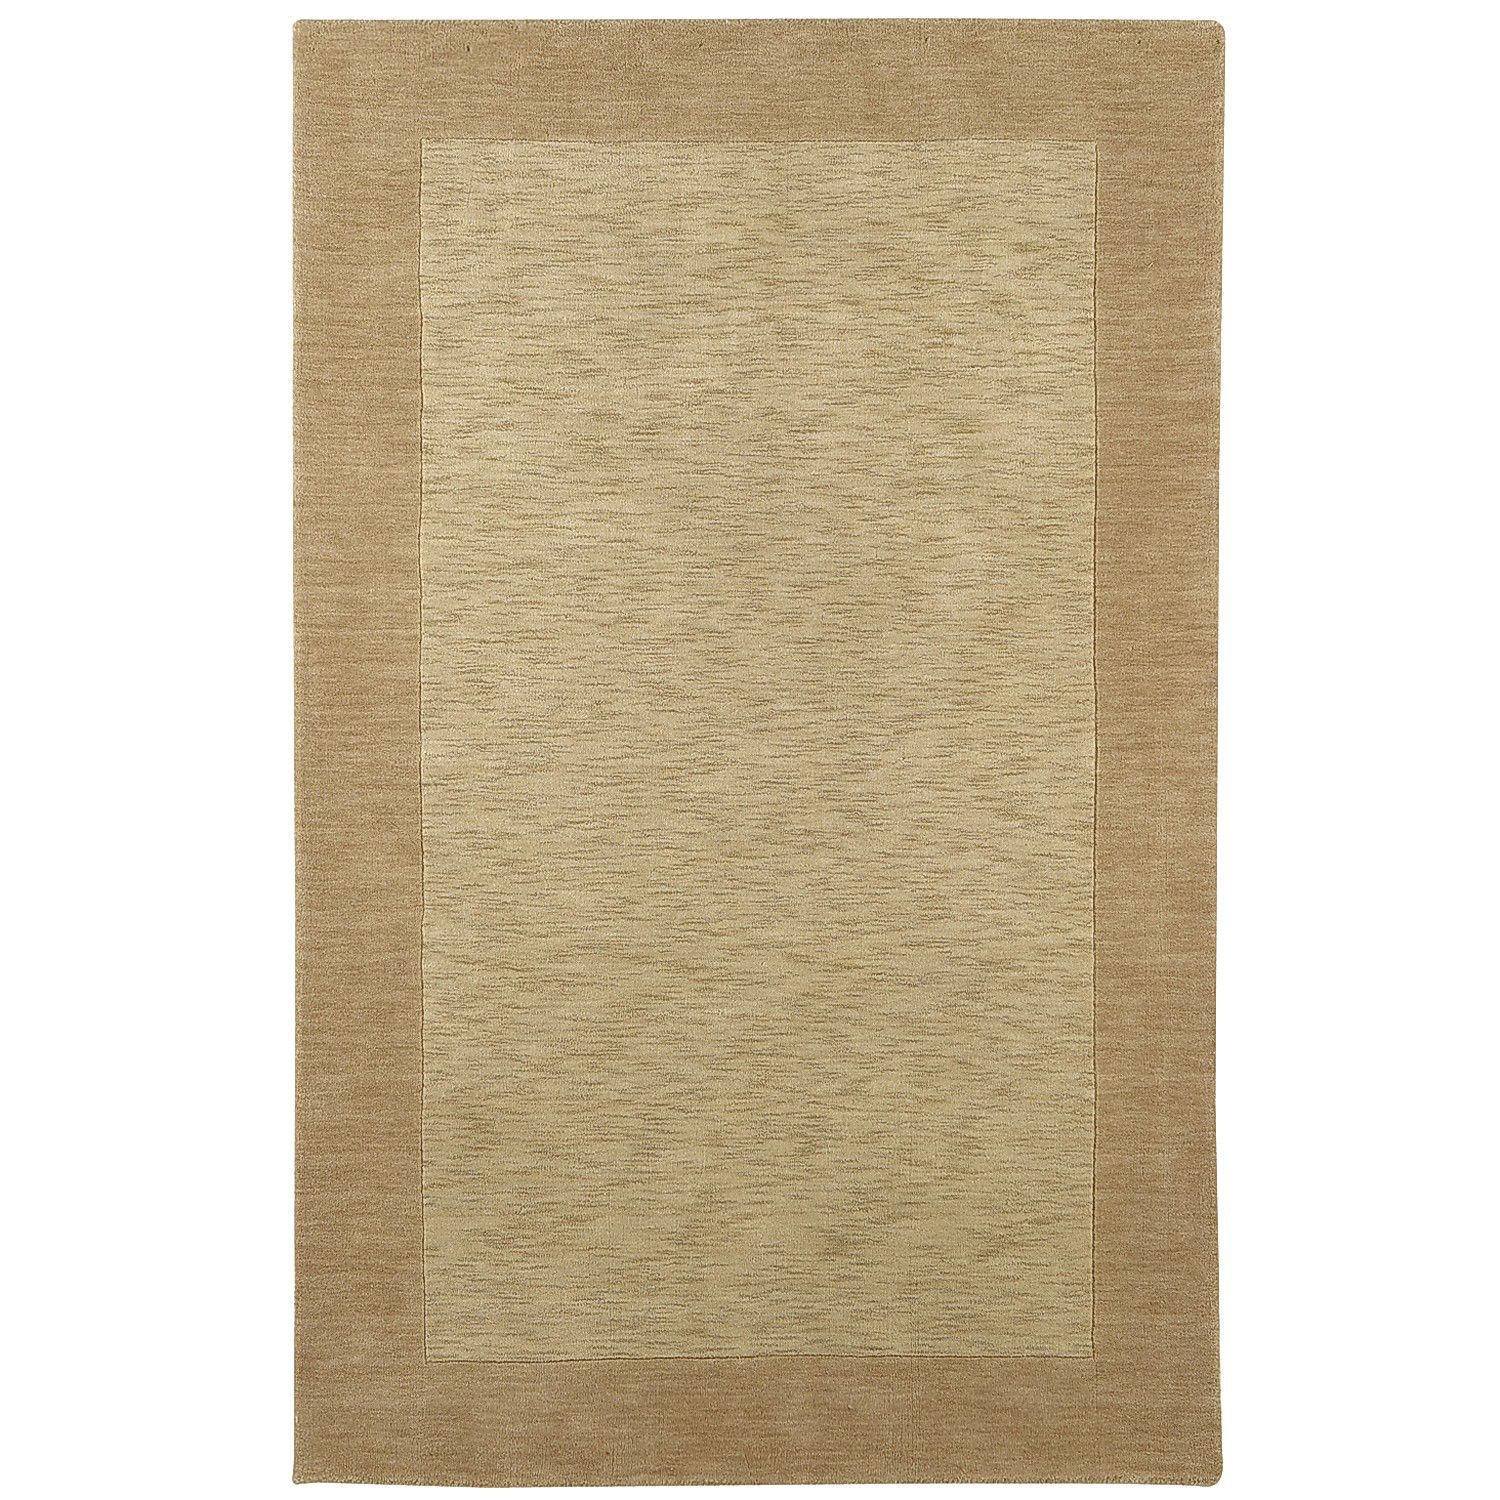 Heather Border Khaki Rug Heather Border Khaki